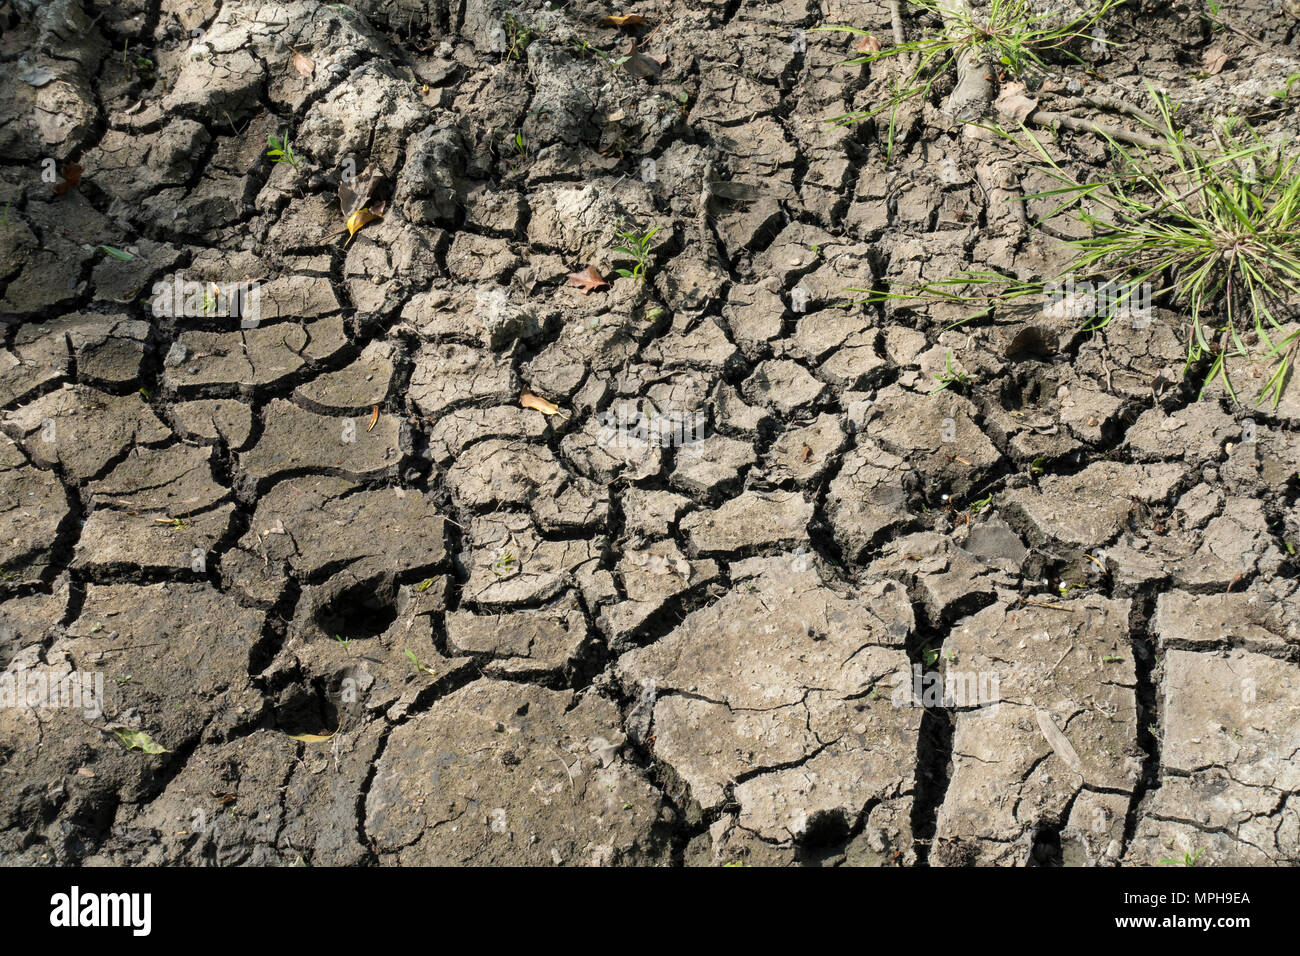 cracked-dry-ground-MPH9EA.jpg